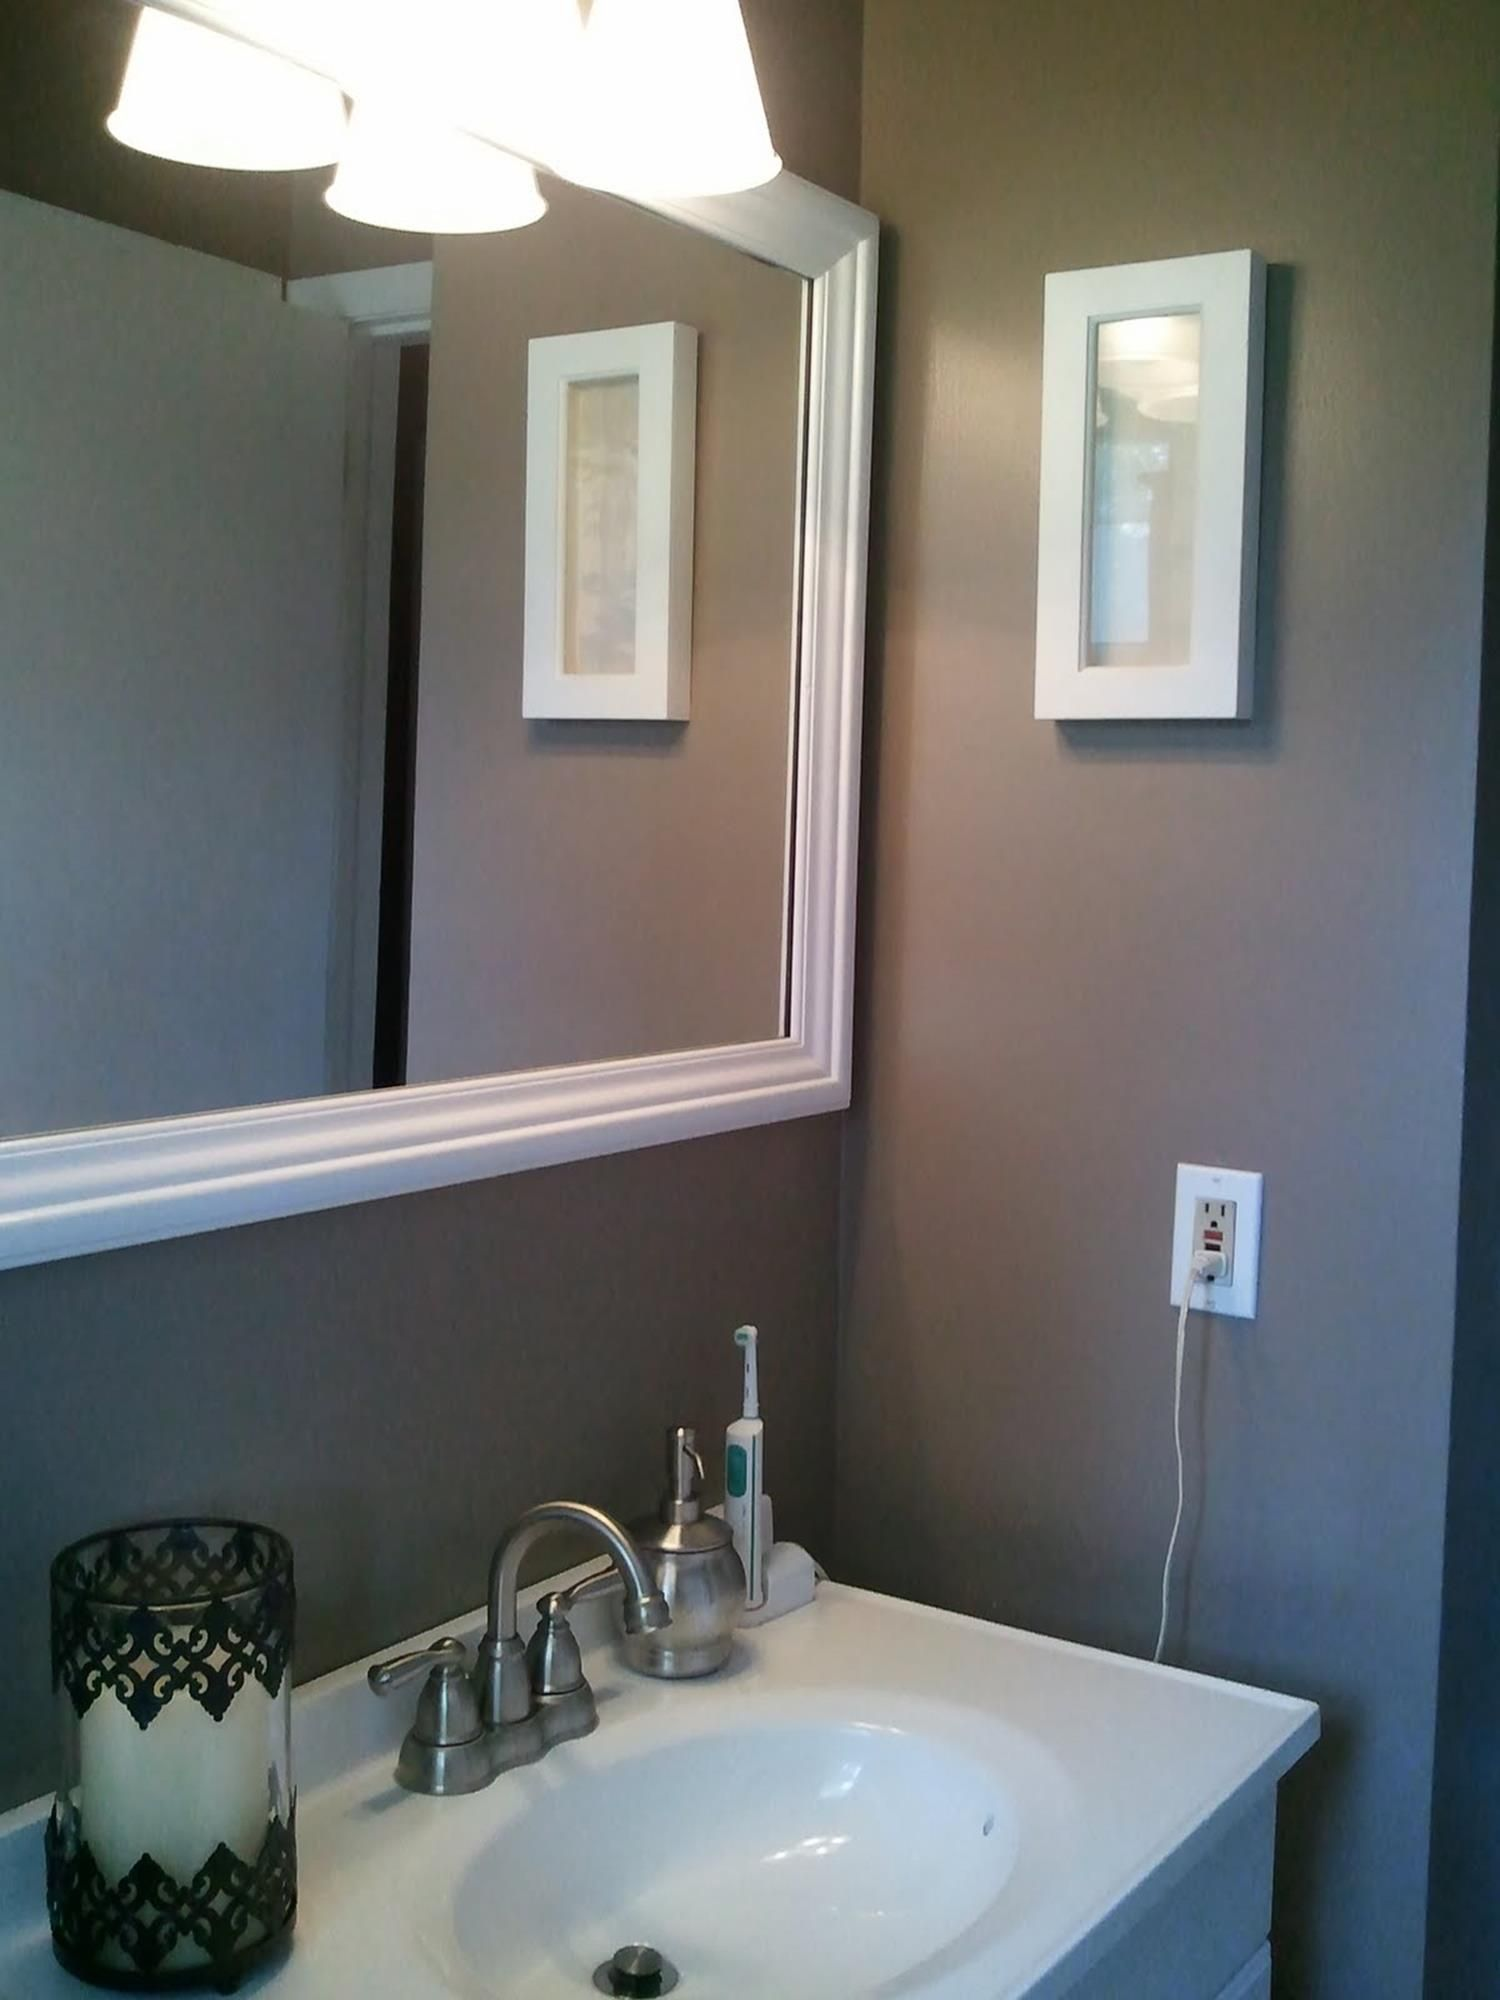 42 Best Paint Colors For Small Bathrooms Your Bathroom Look Clean Decorecord Small Bathroom Colors Bathroom Color Schemes Best Bathroom Colors